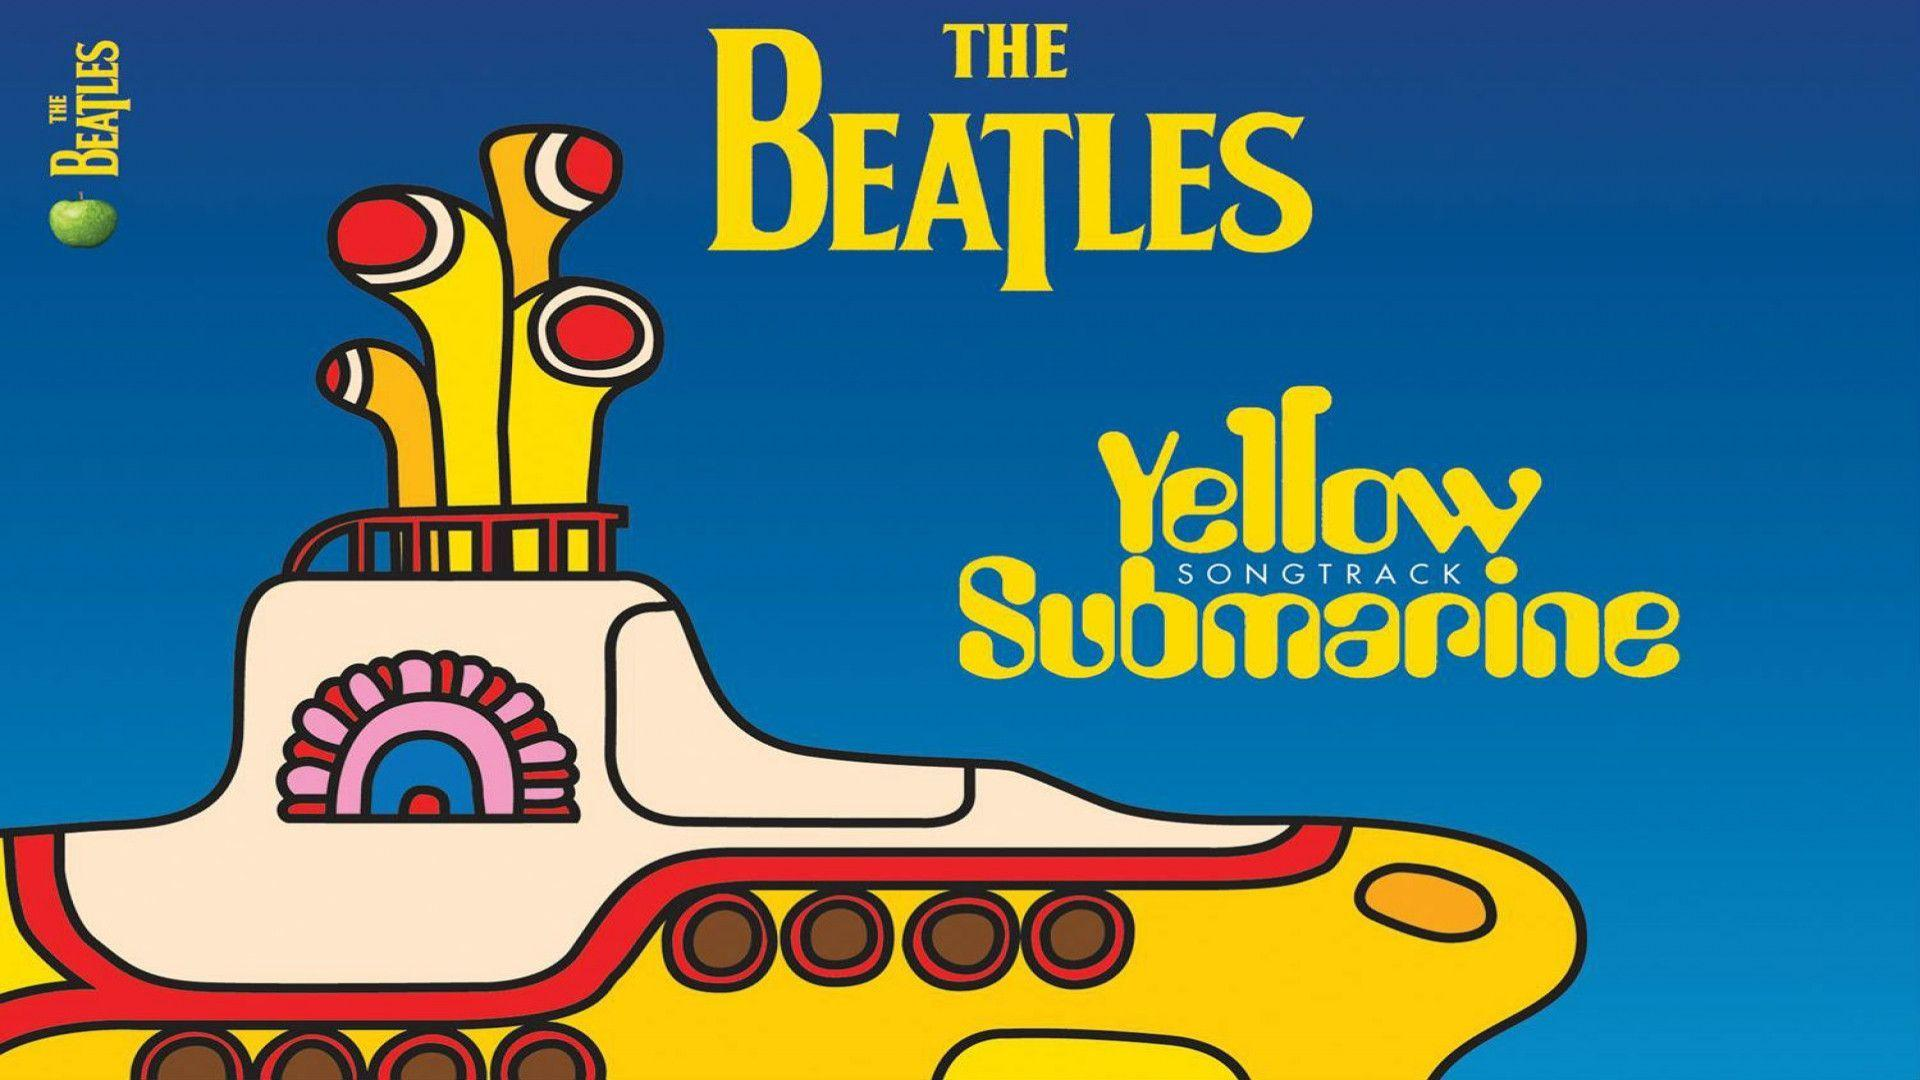 The Beatles Yellow Submarine Soundtrack 1920x1080 HD Wallpapers